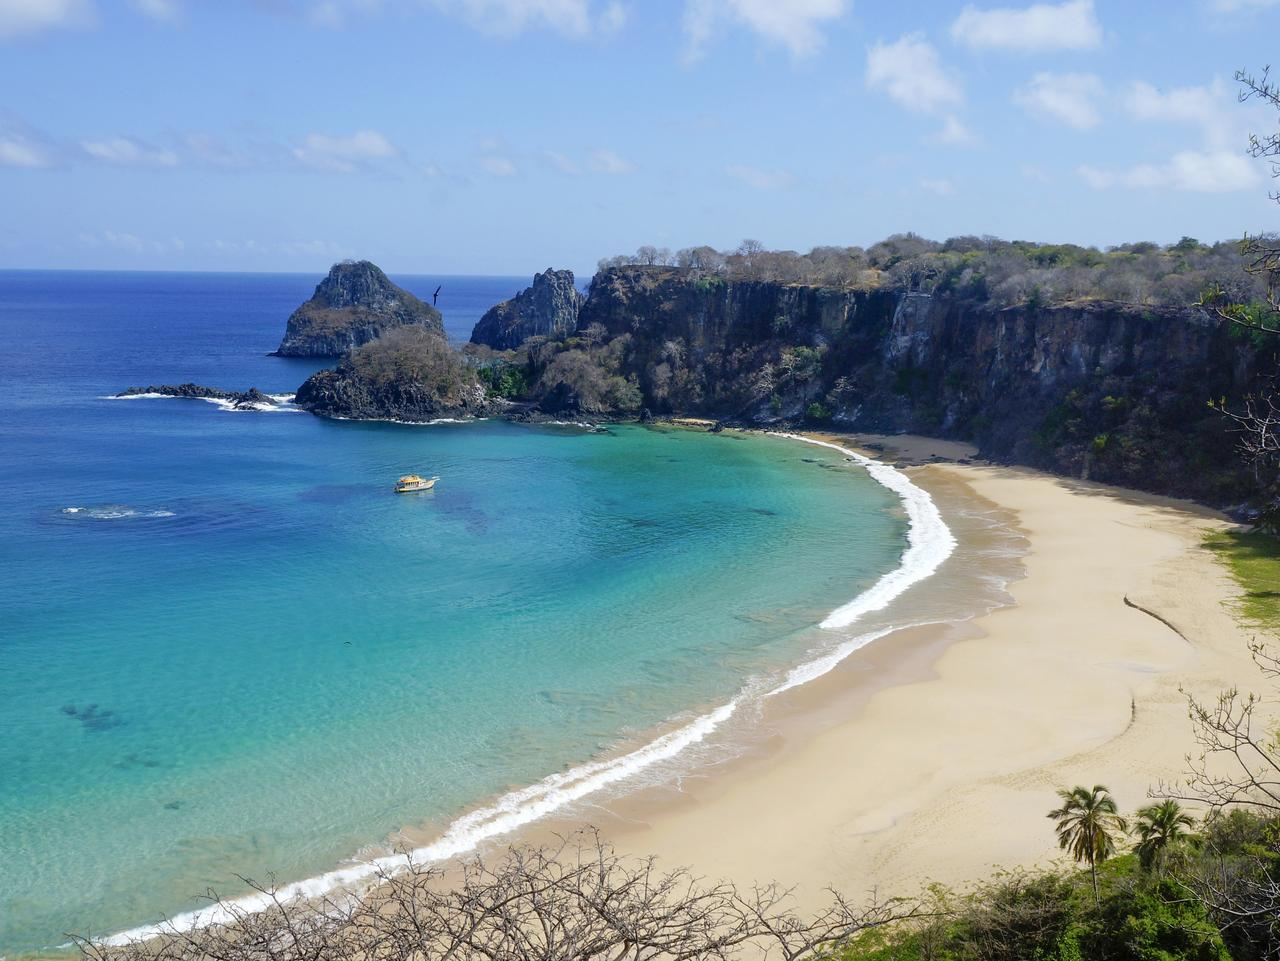 Latin America has some of the world's best beaches